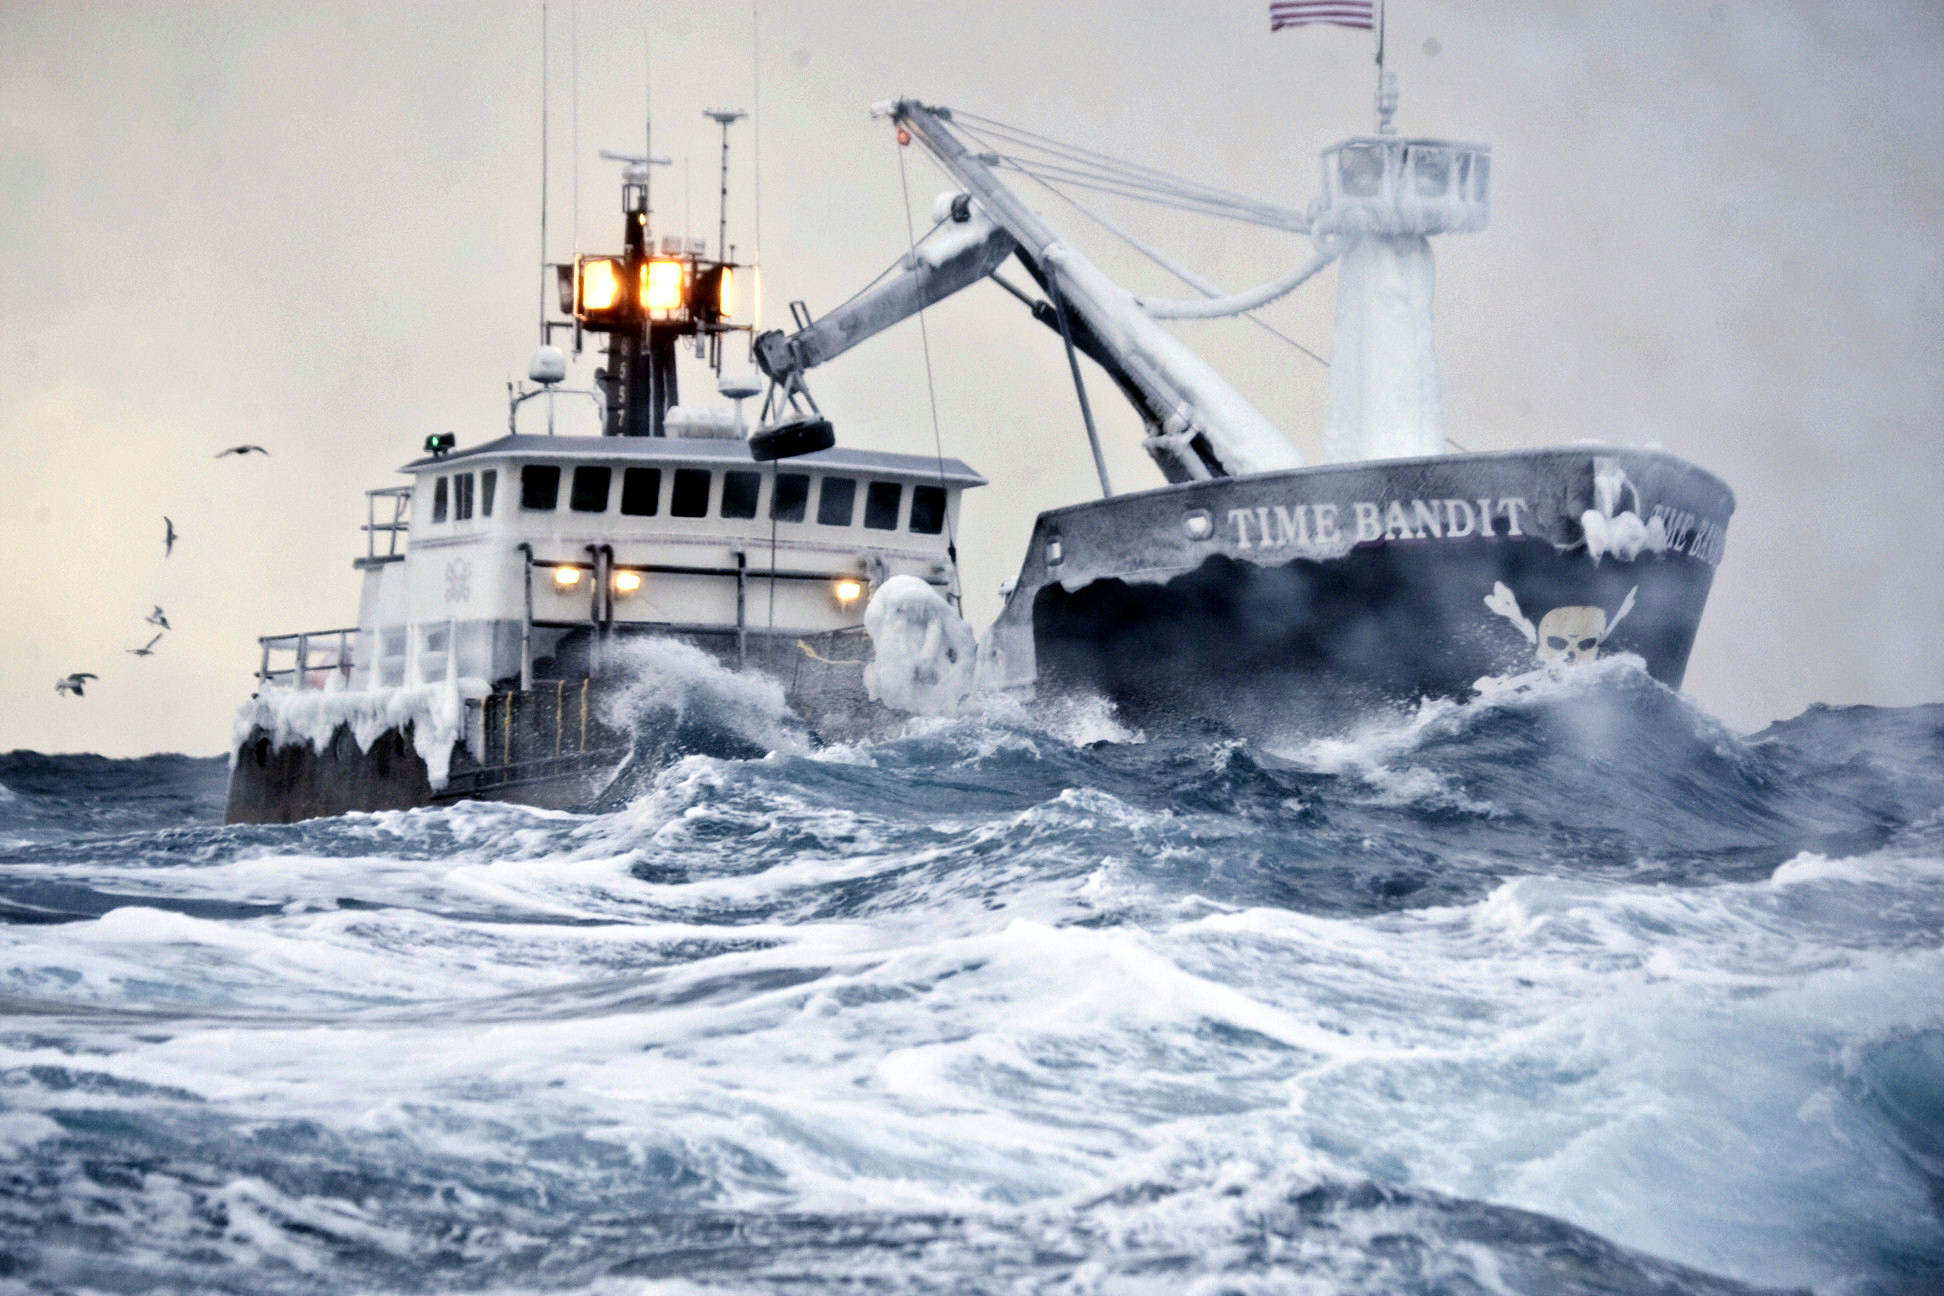 Time-Bandit-Deadliest-Catch-Bering-Sea-iceDeadliest Catch Time Bandit